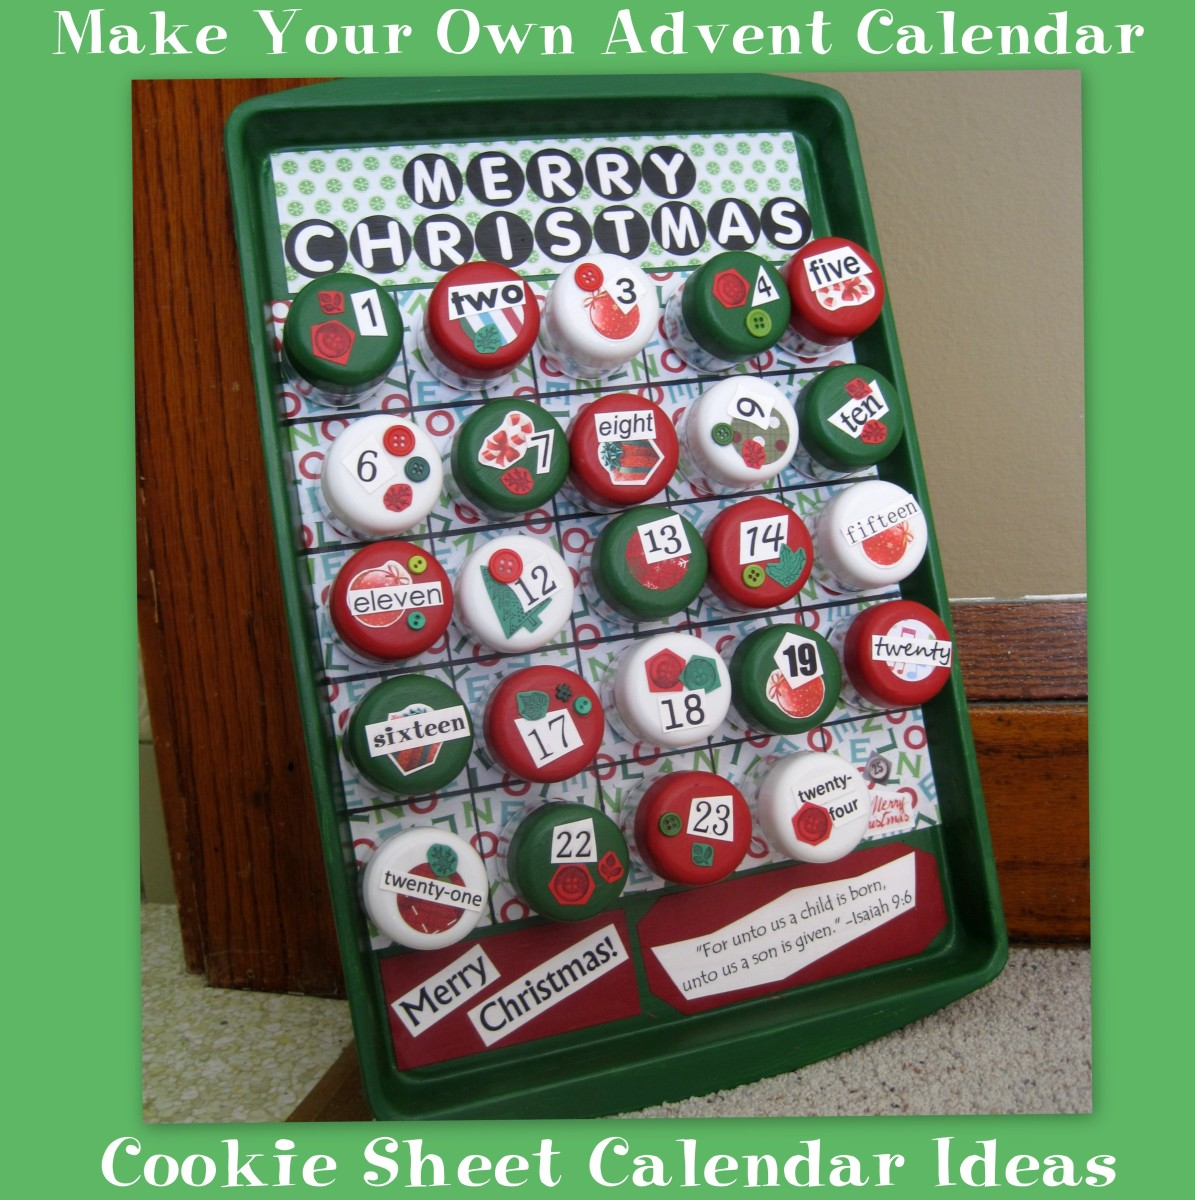 Make Your Own Advent Calendar: Cookie Sheet Calendar Ideas